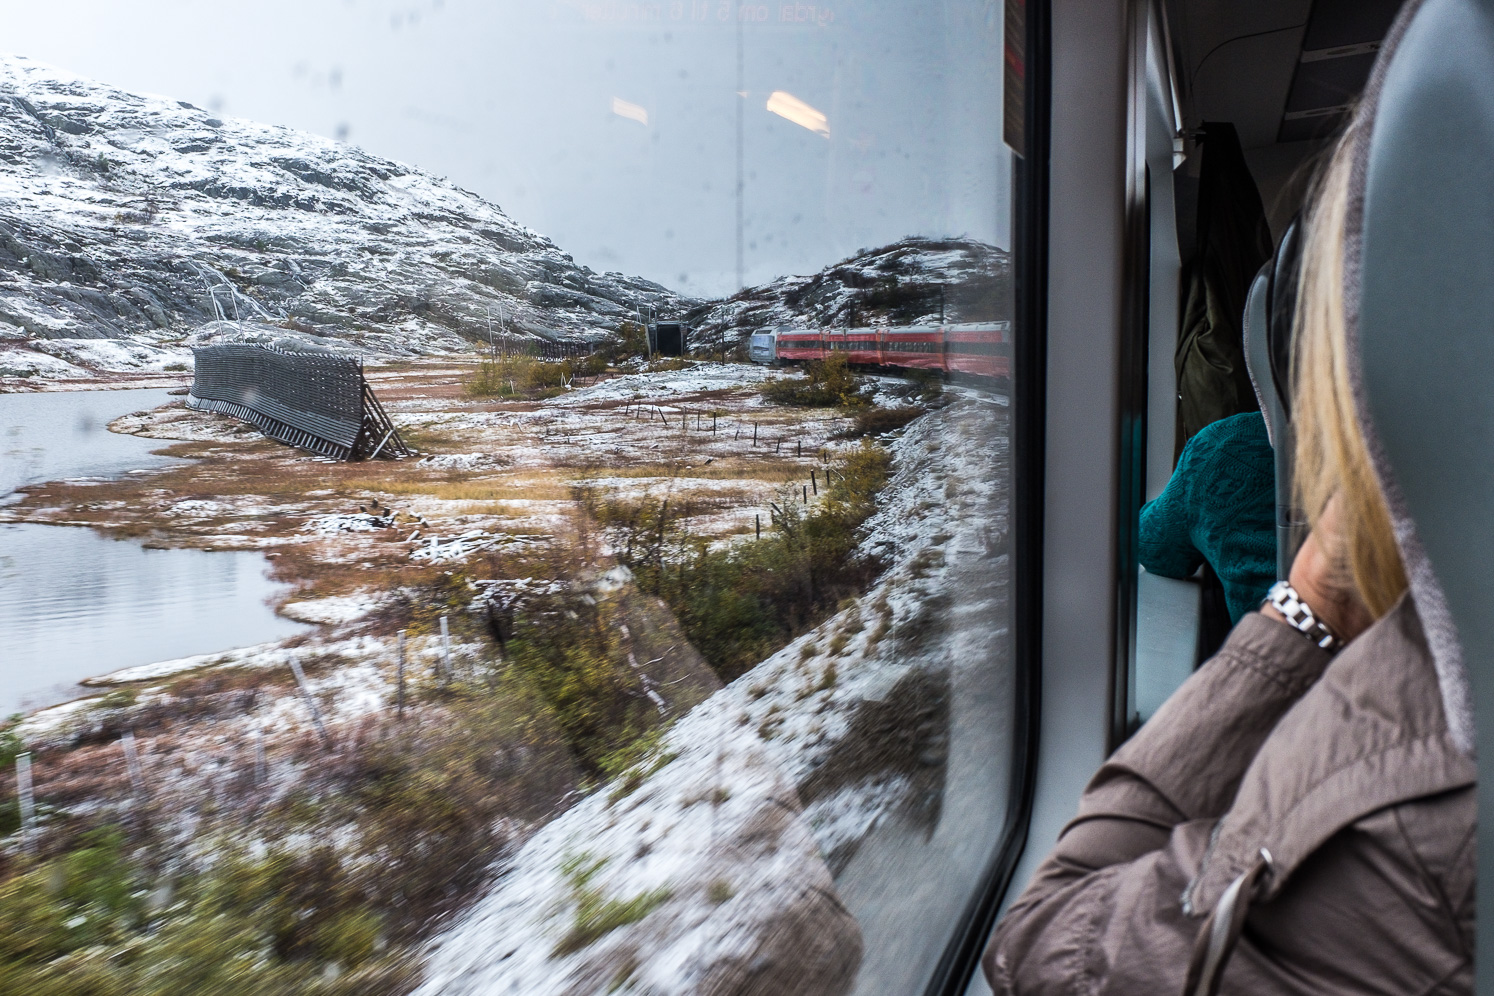 Between hallingskeid and Myrdal. Snow screens can be seen to the left side of the train.